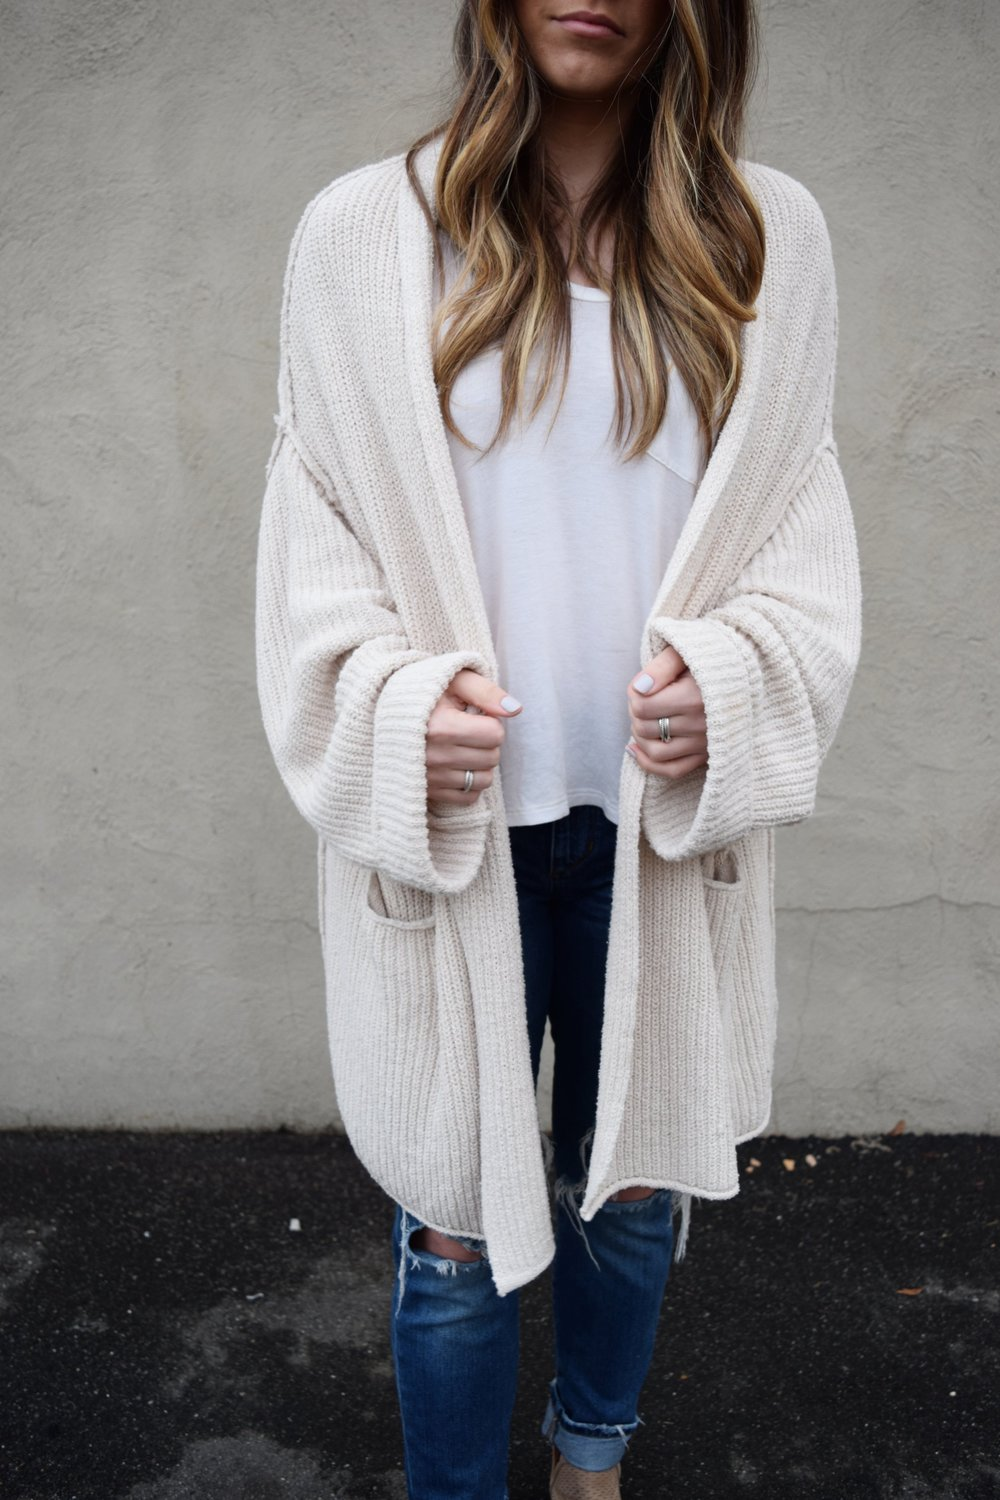 The Best of 2017 | Pine Barren Beauty | free people oversized cardigan, cozy cardigan, cozy outfit idea, fall layers, winter layers